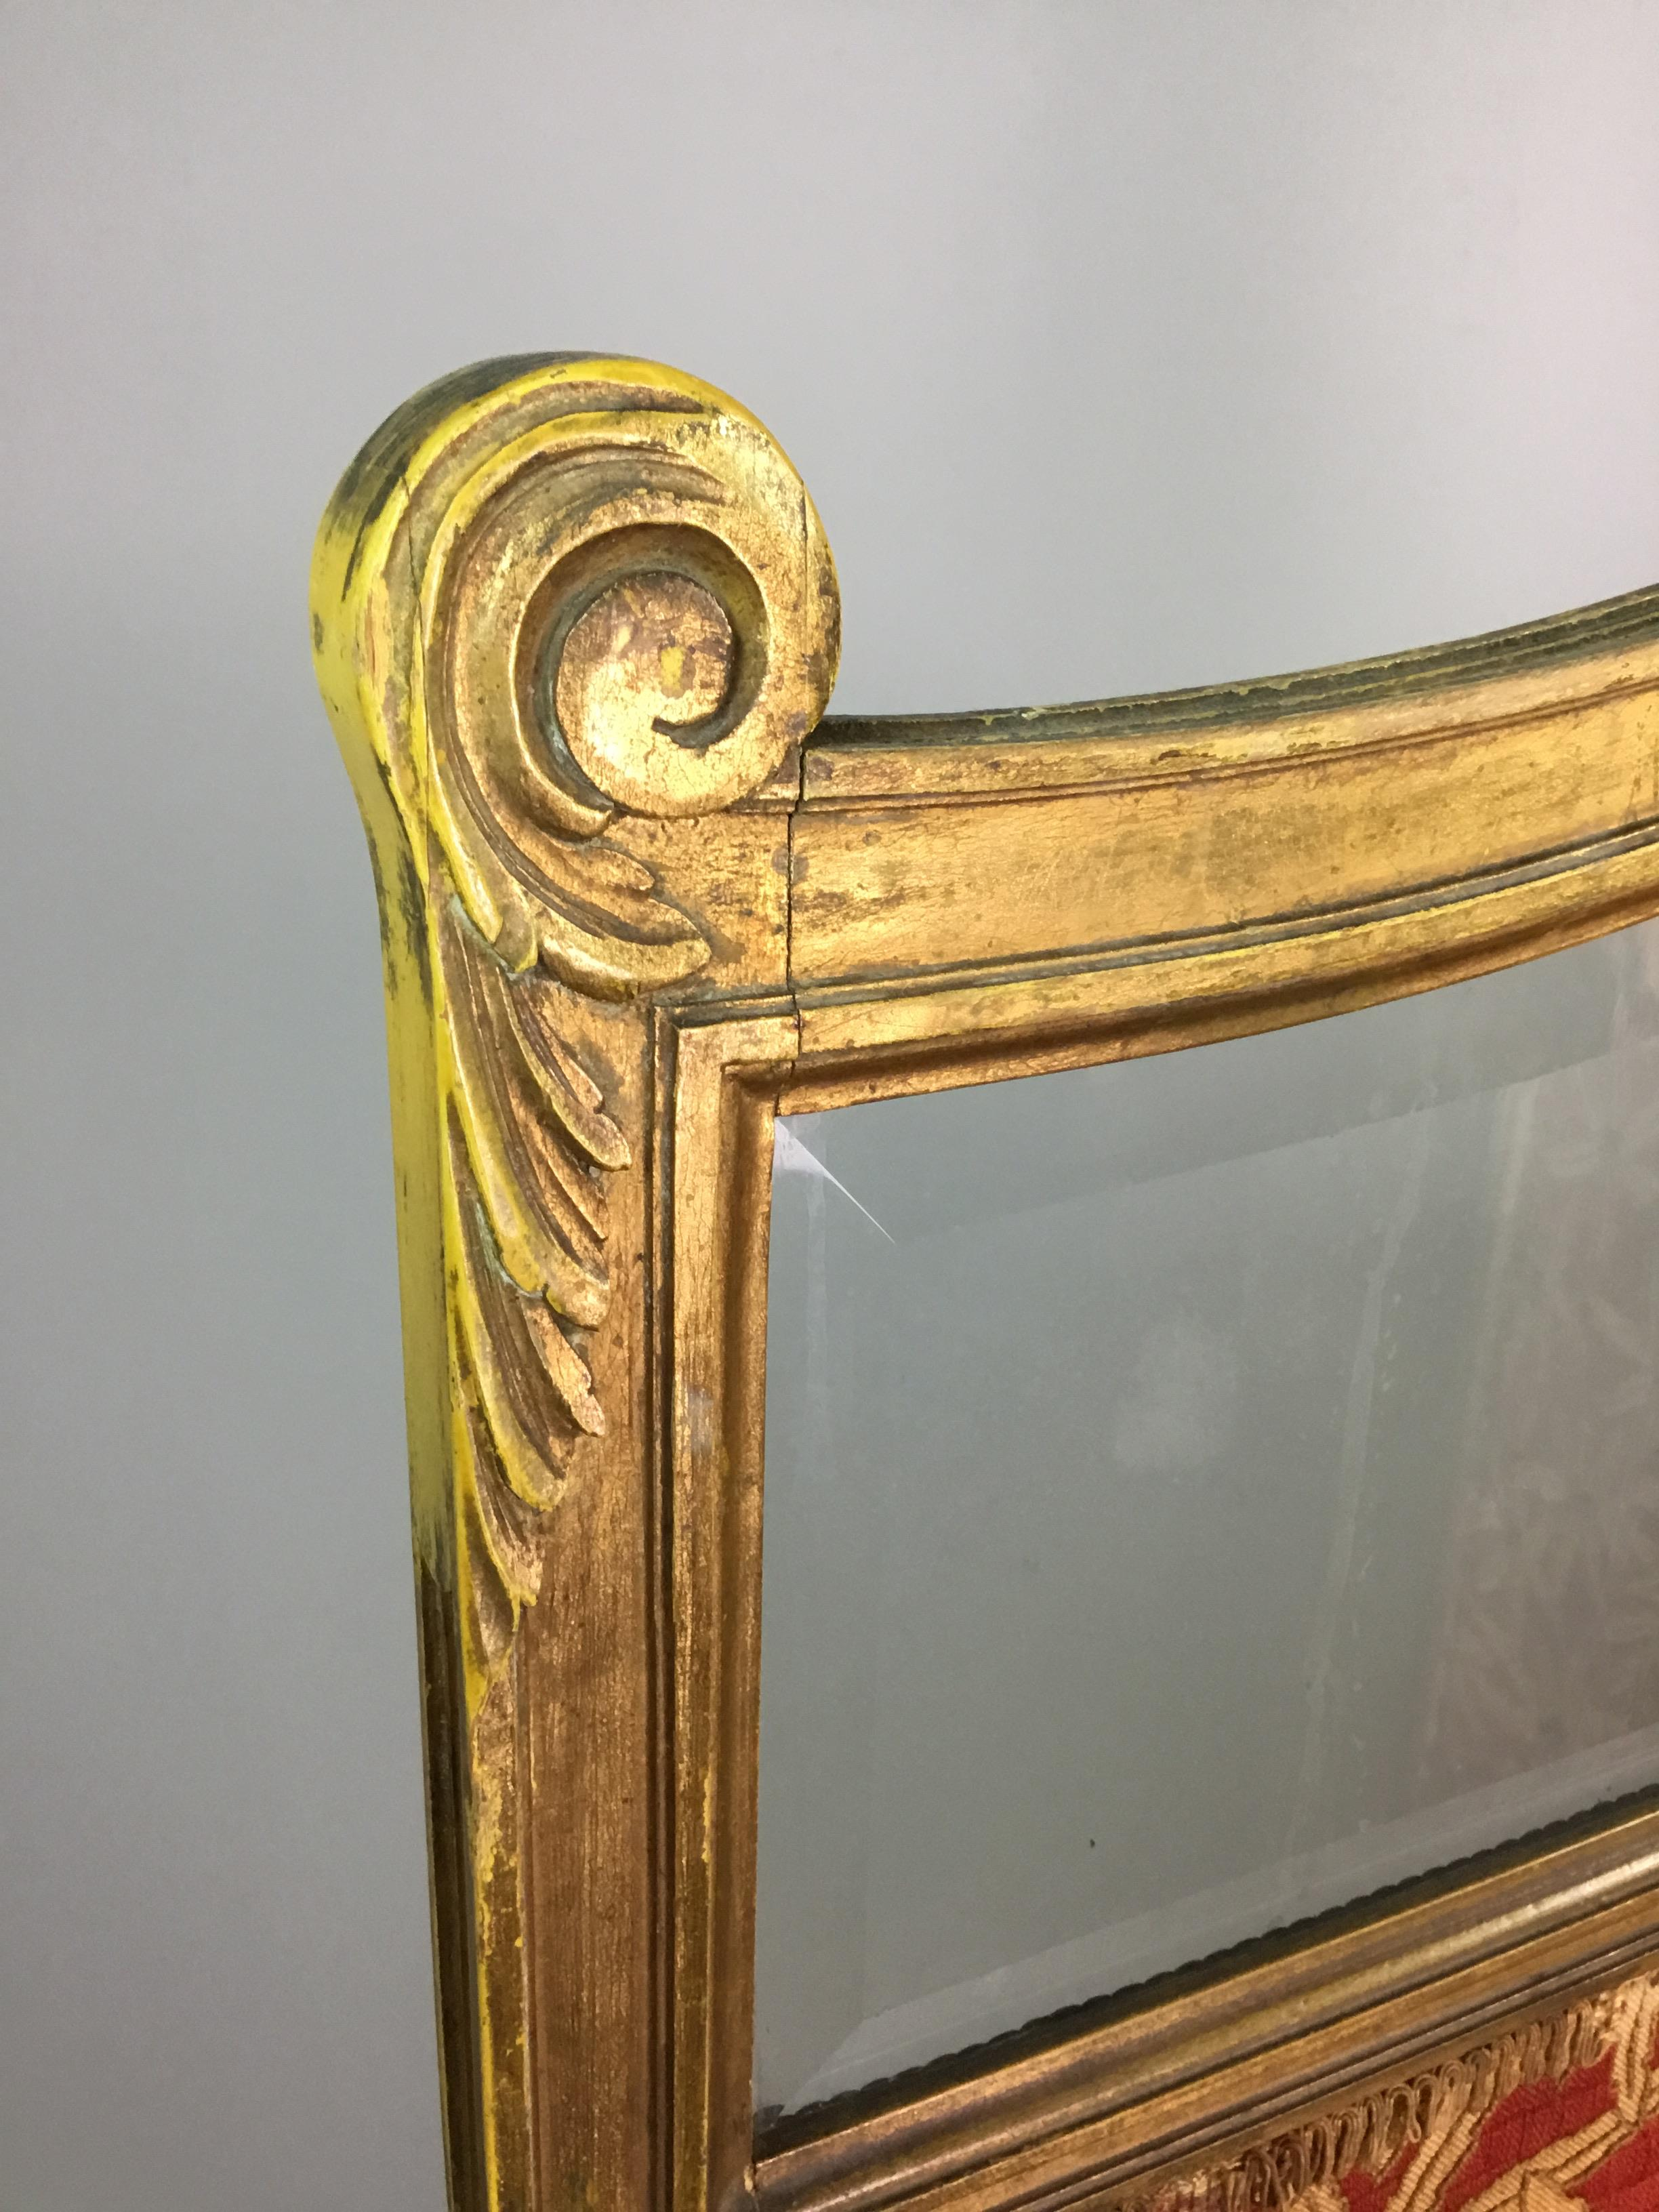 A LATE VICTORIAN GILTWOOD TWO PANEL DRESSING SCREEN - Image 2 of 4